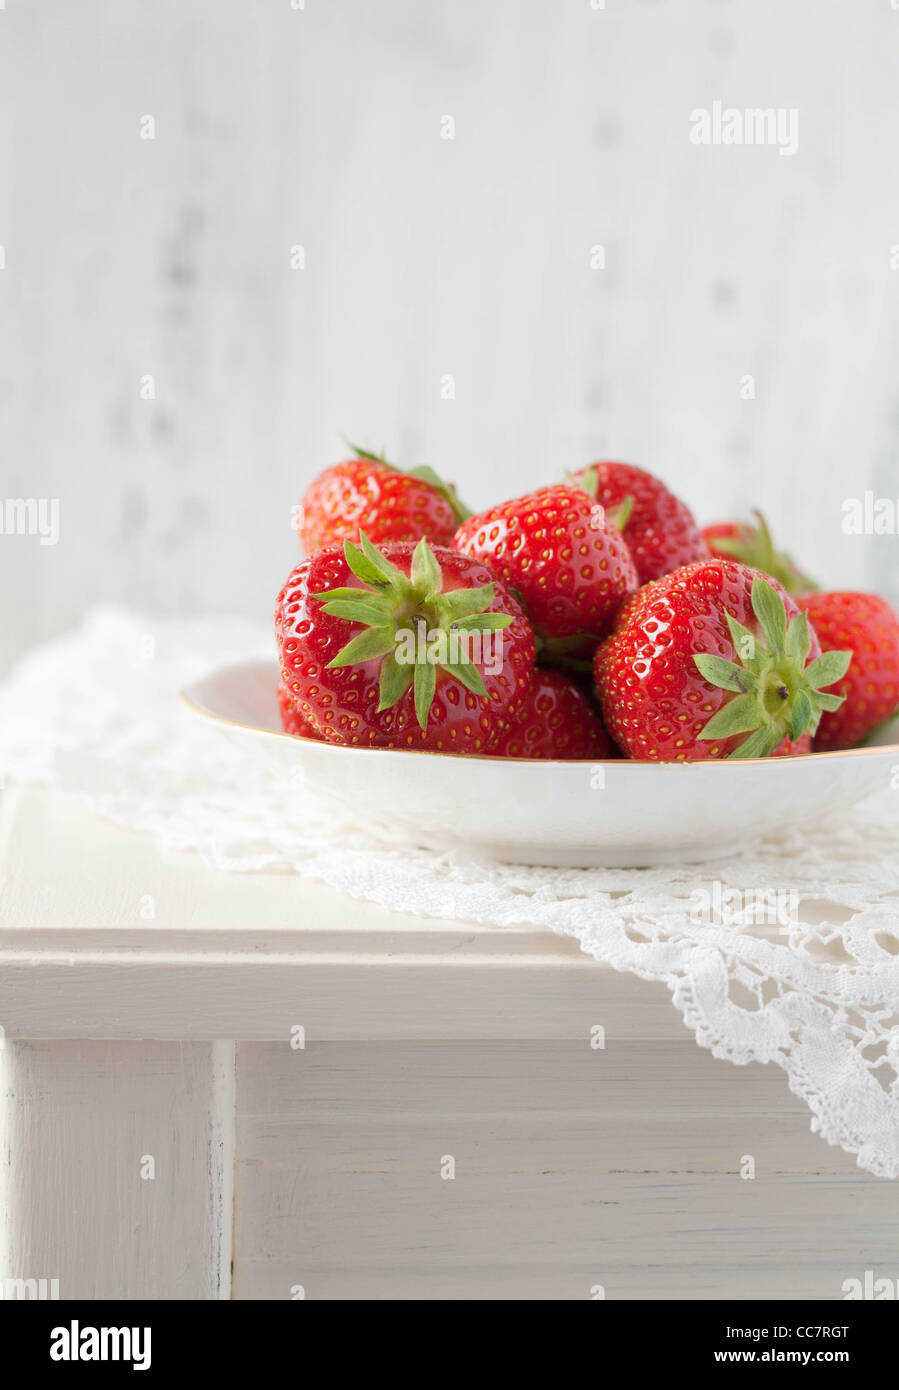 Strawberries on a white table with a crochet mat - Stock Image